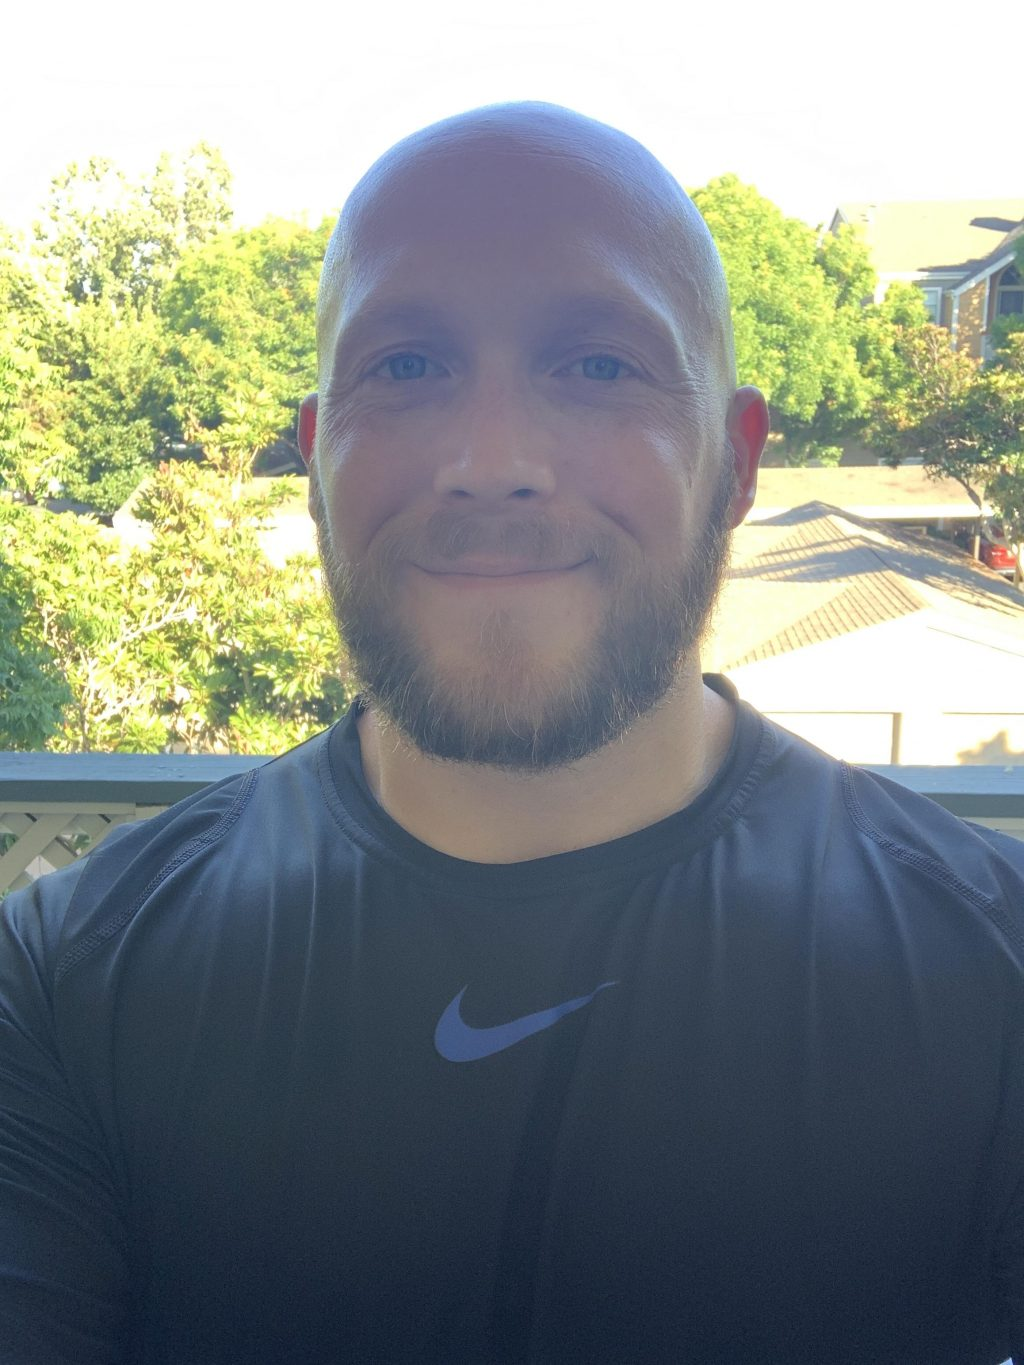 Personal Trainer San-jose, California - Cody Miller